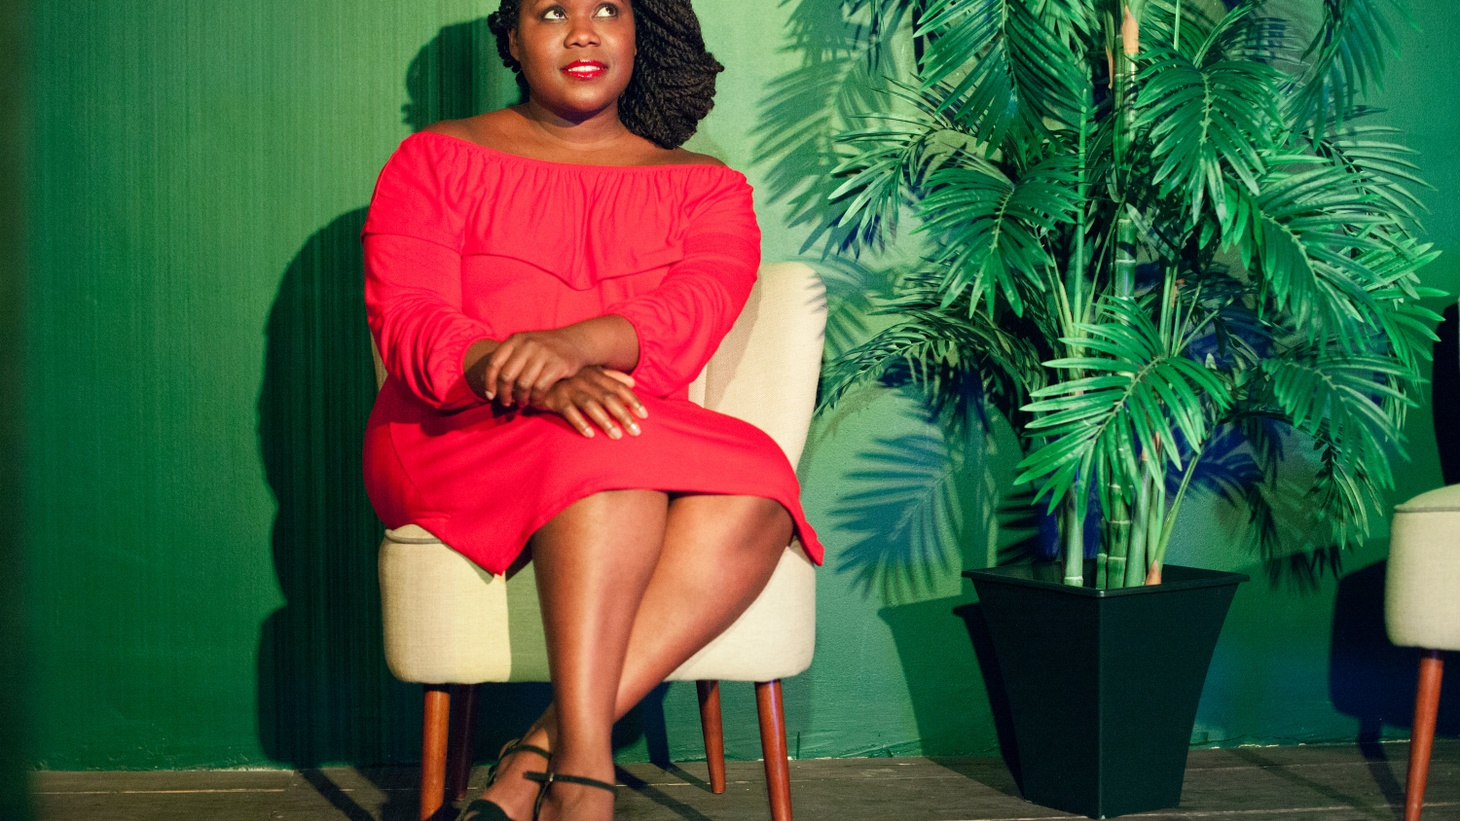 Zara McFarlane explores her British-Jamaican identity on her third album. It's a meeting point between jazz and the rhythms of reggae, calypso and nyabinghi.